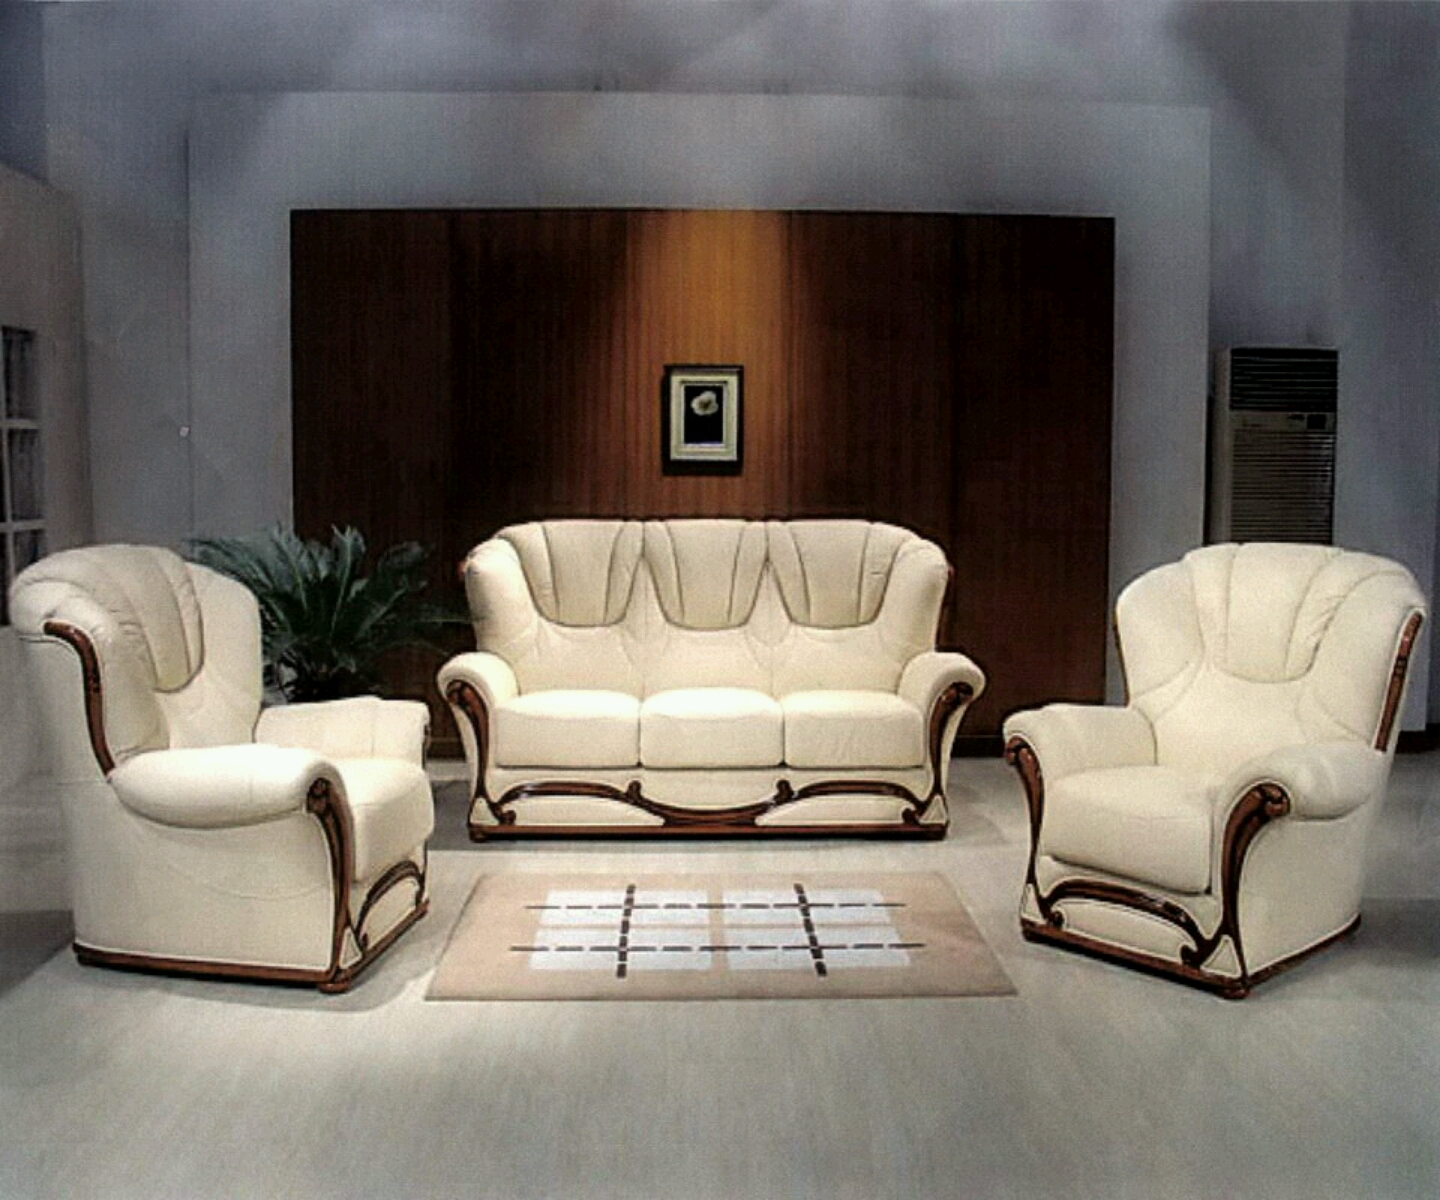 Lounge Designer Furniture: H For Heroine: Modern Sofa Set Designs